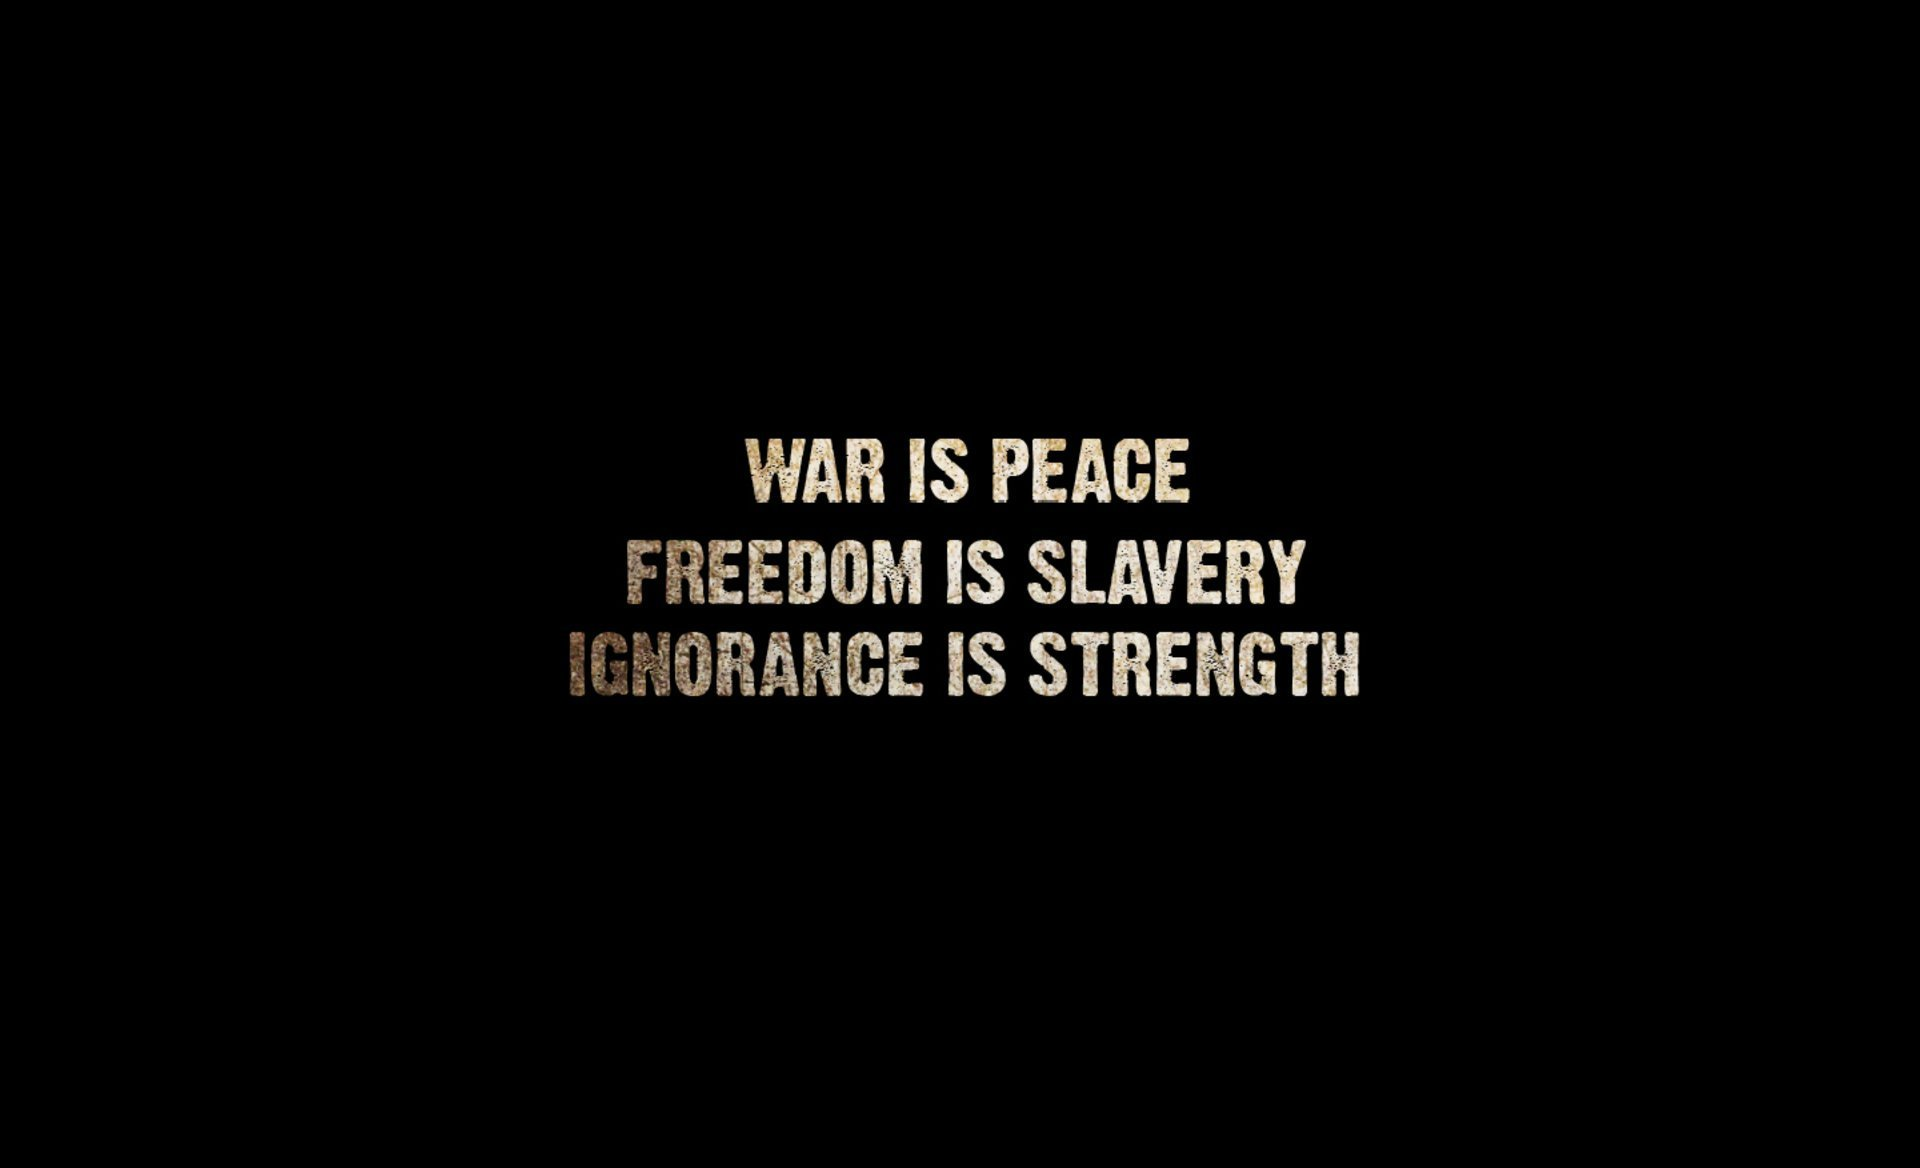 war is peace . freedom is slavery . ignorance is strength War Is Peace Freedom Is Slavery Ignorance Is Strength